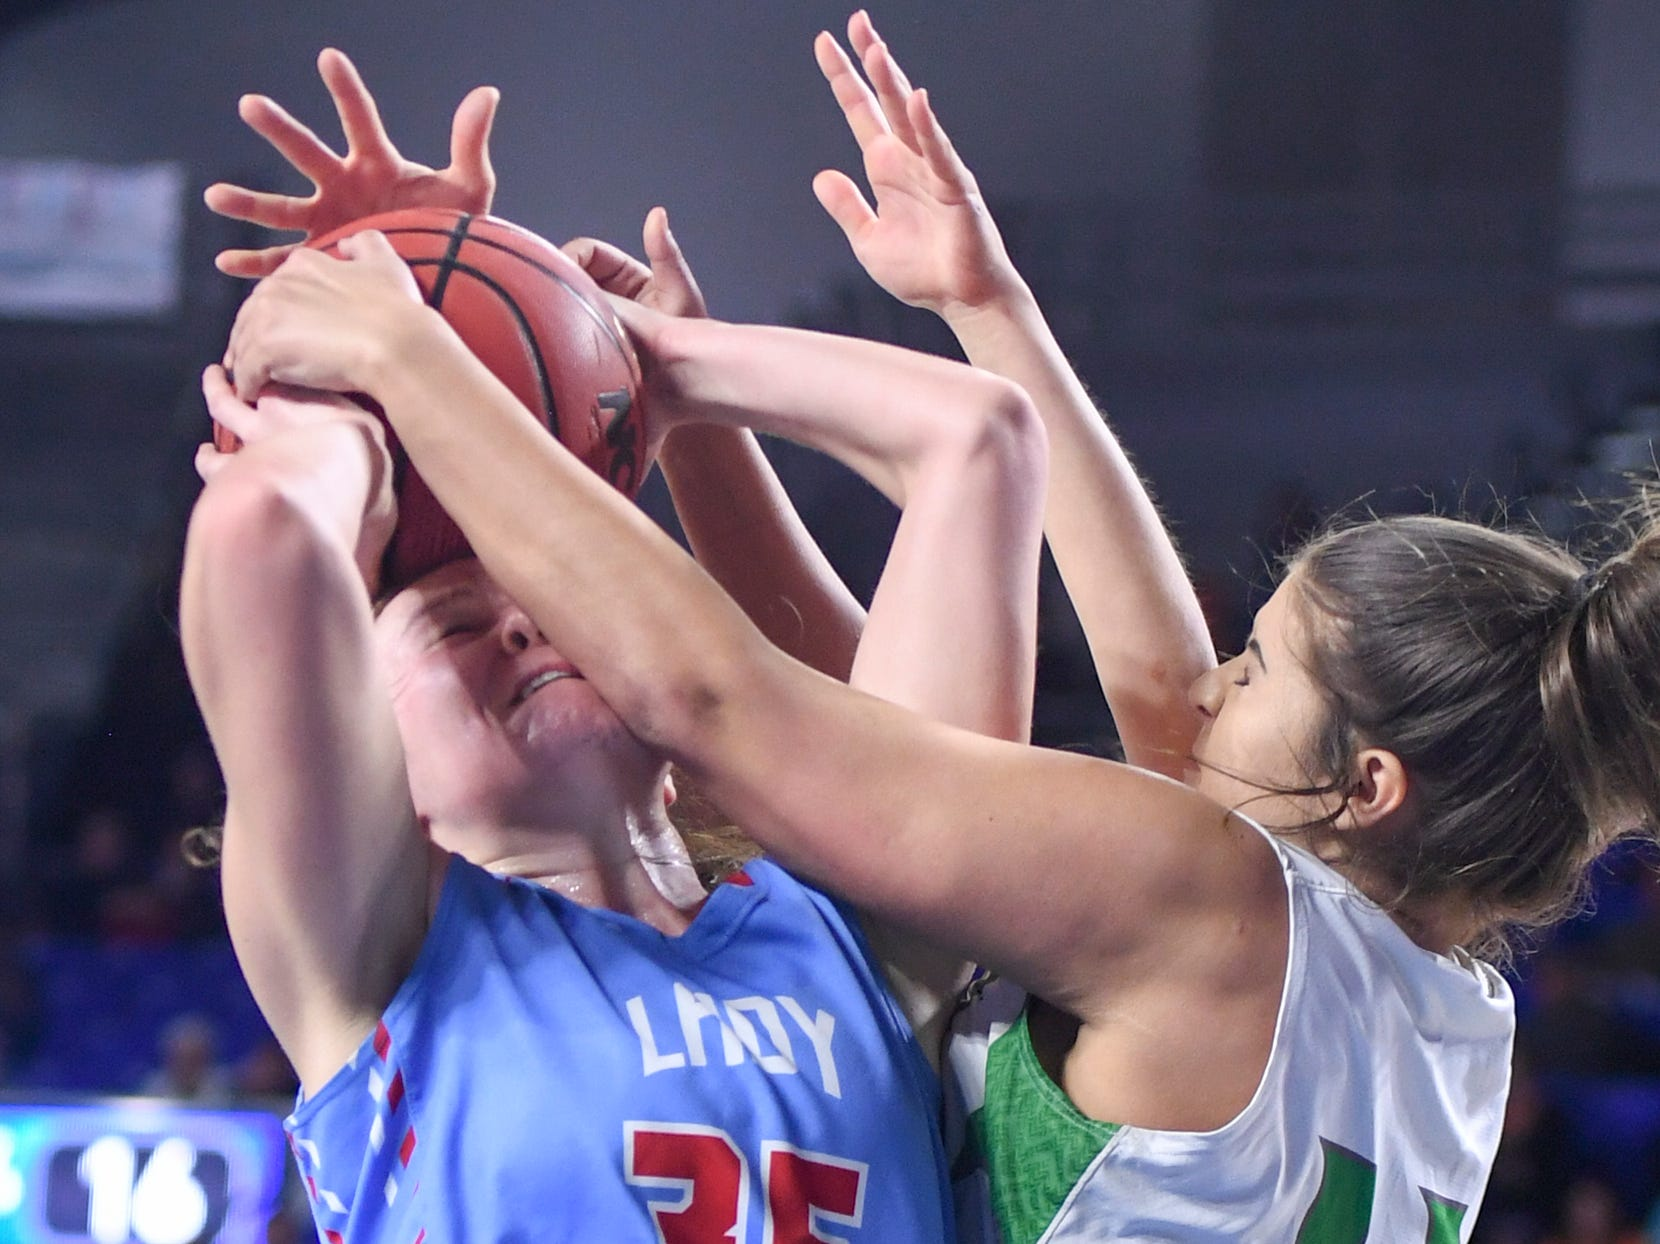 Midway's Megan Norman (11) and Gibson County's Hannah Ball (35) battle for a rebound during their Class A semifinal game, Friday, March 8, 2019, in  Murfreesboro.